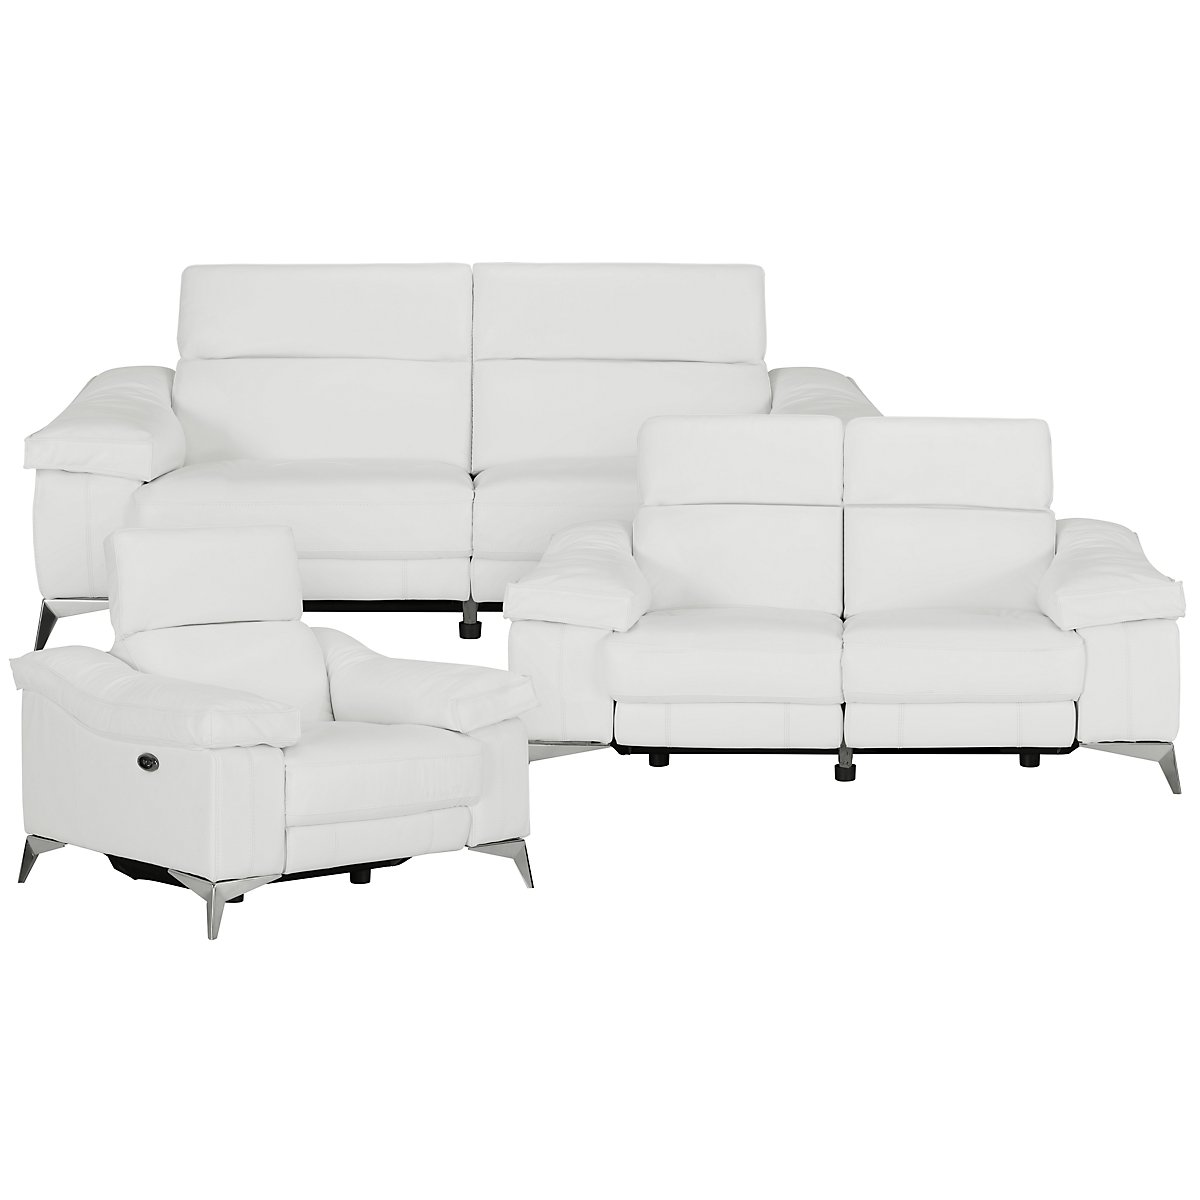 City Furniture: Luca White Leather & Vinyl Power Reclining Living Room